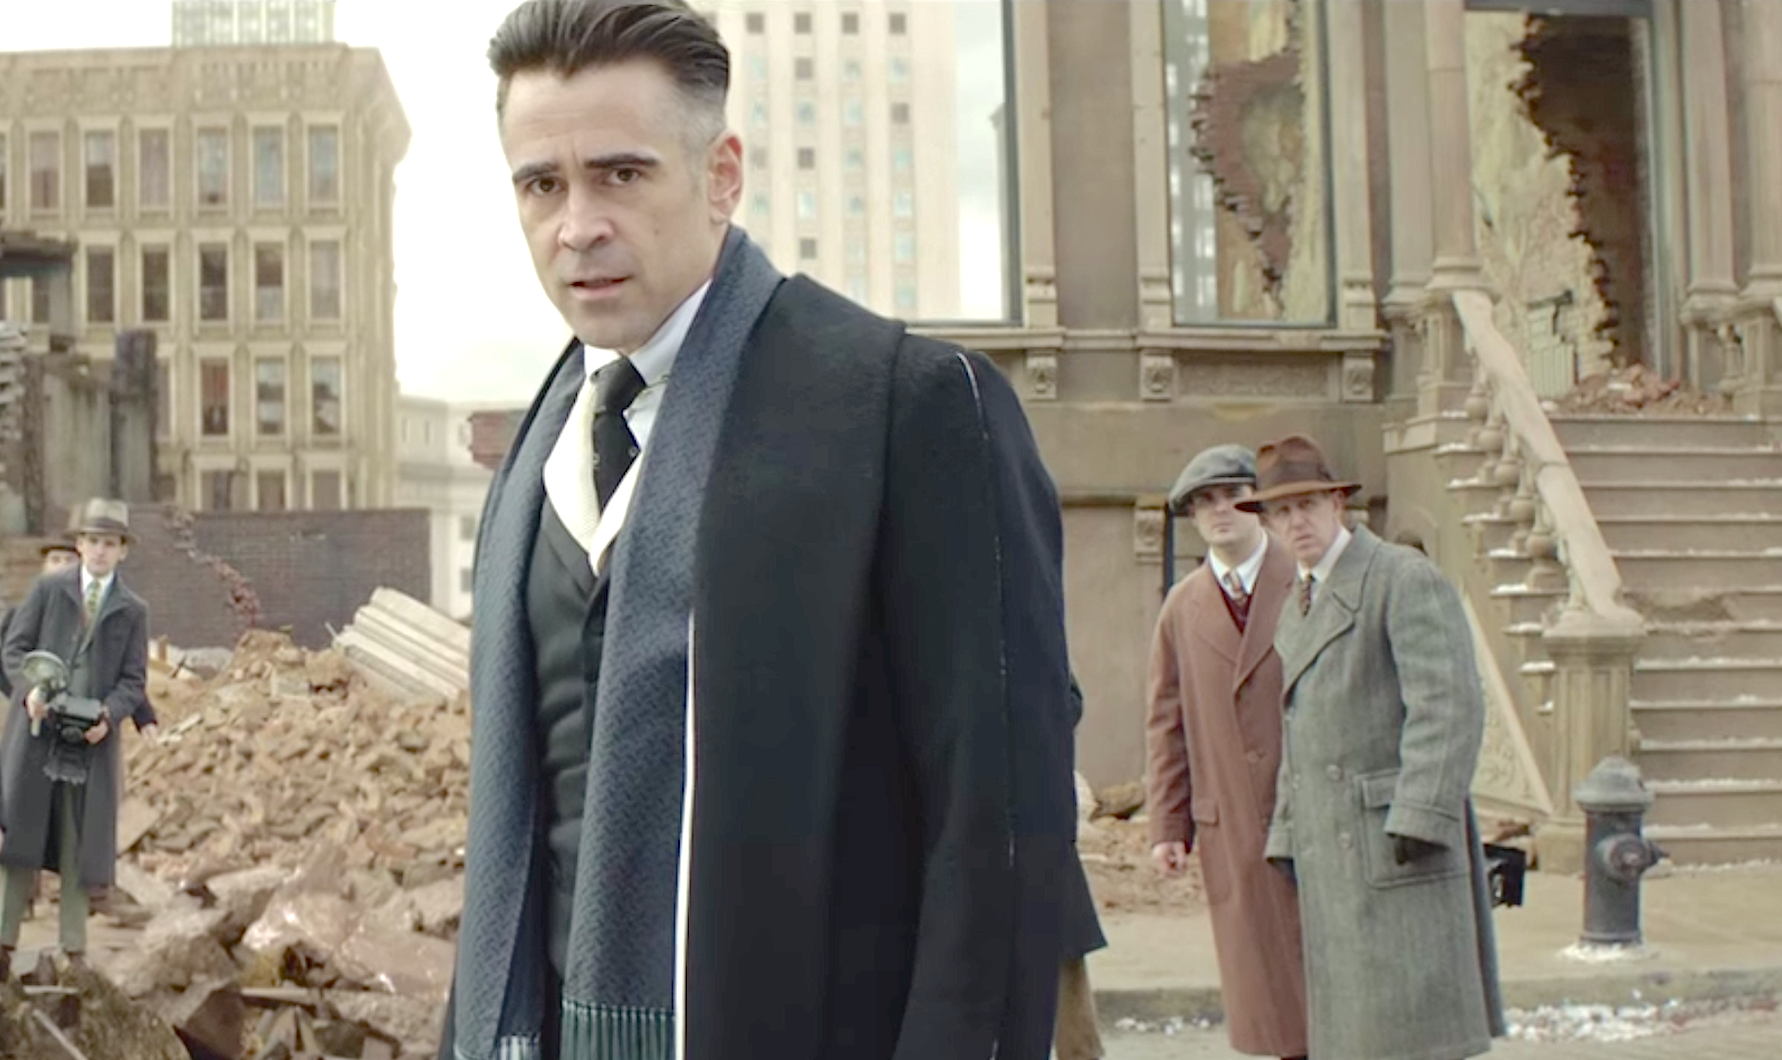 Fantastic Beasts And Where To Find Them (2016), Colin Farrell